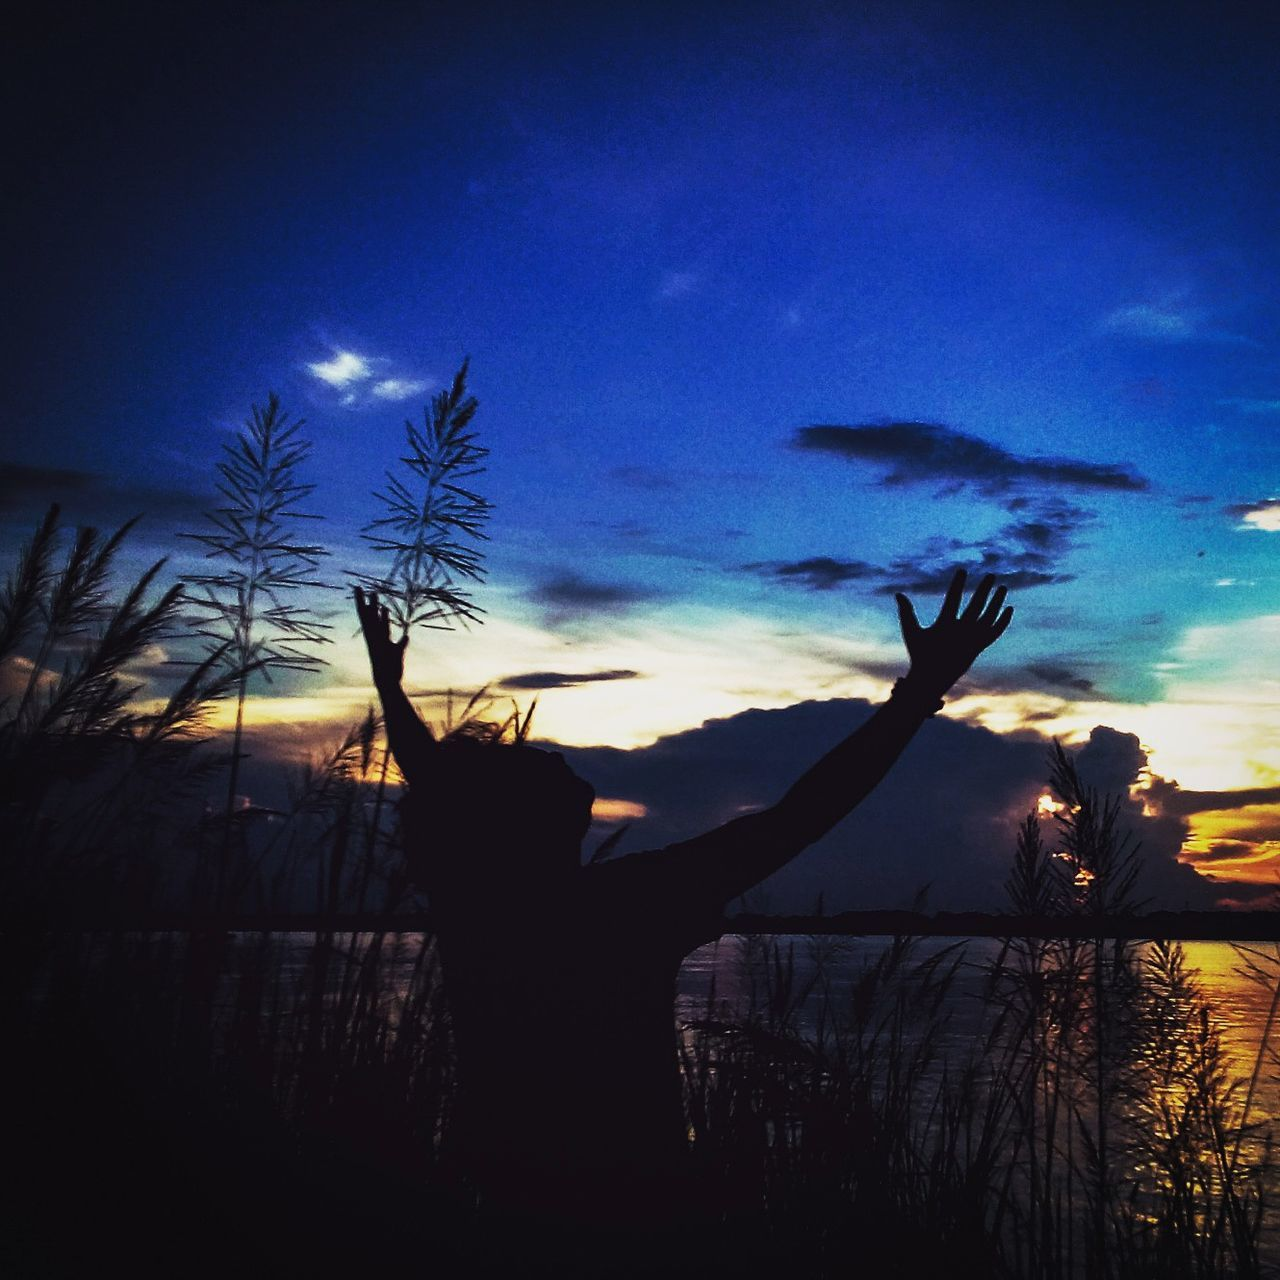 silhouette, sky, sunset, nature, tree, outdoors, beauty in nature, scenics, real people, night, one person, people